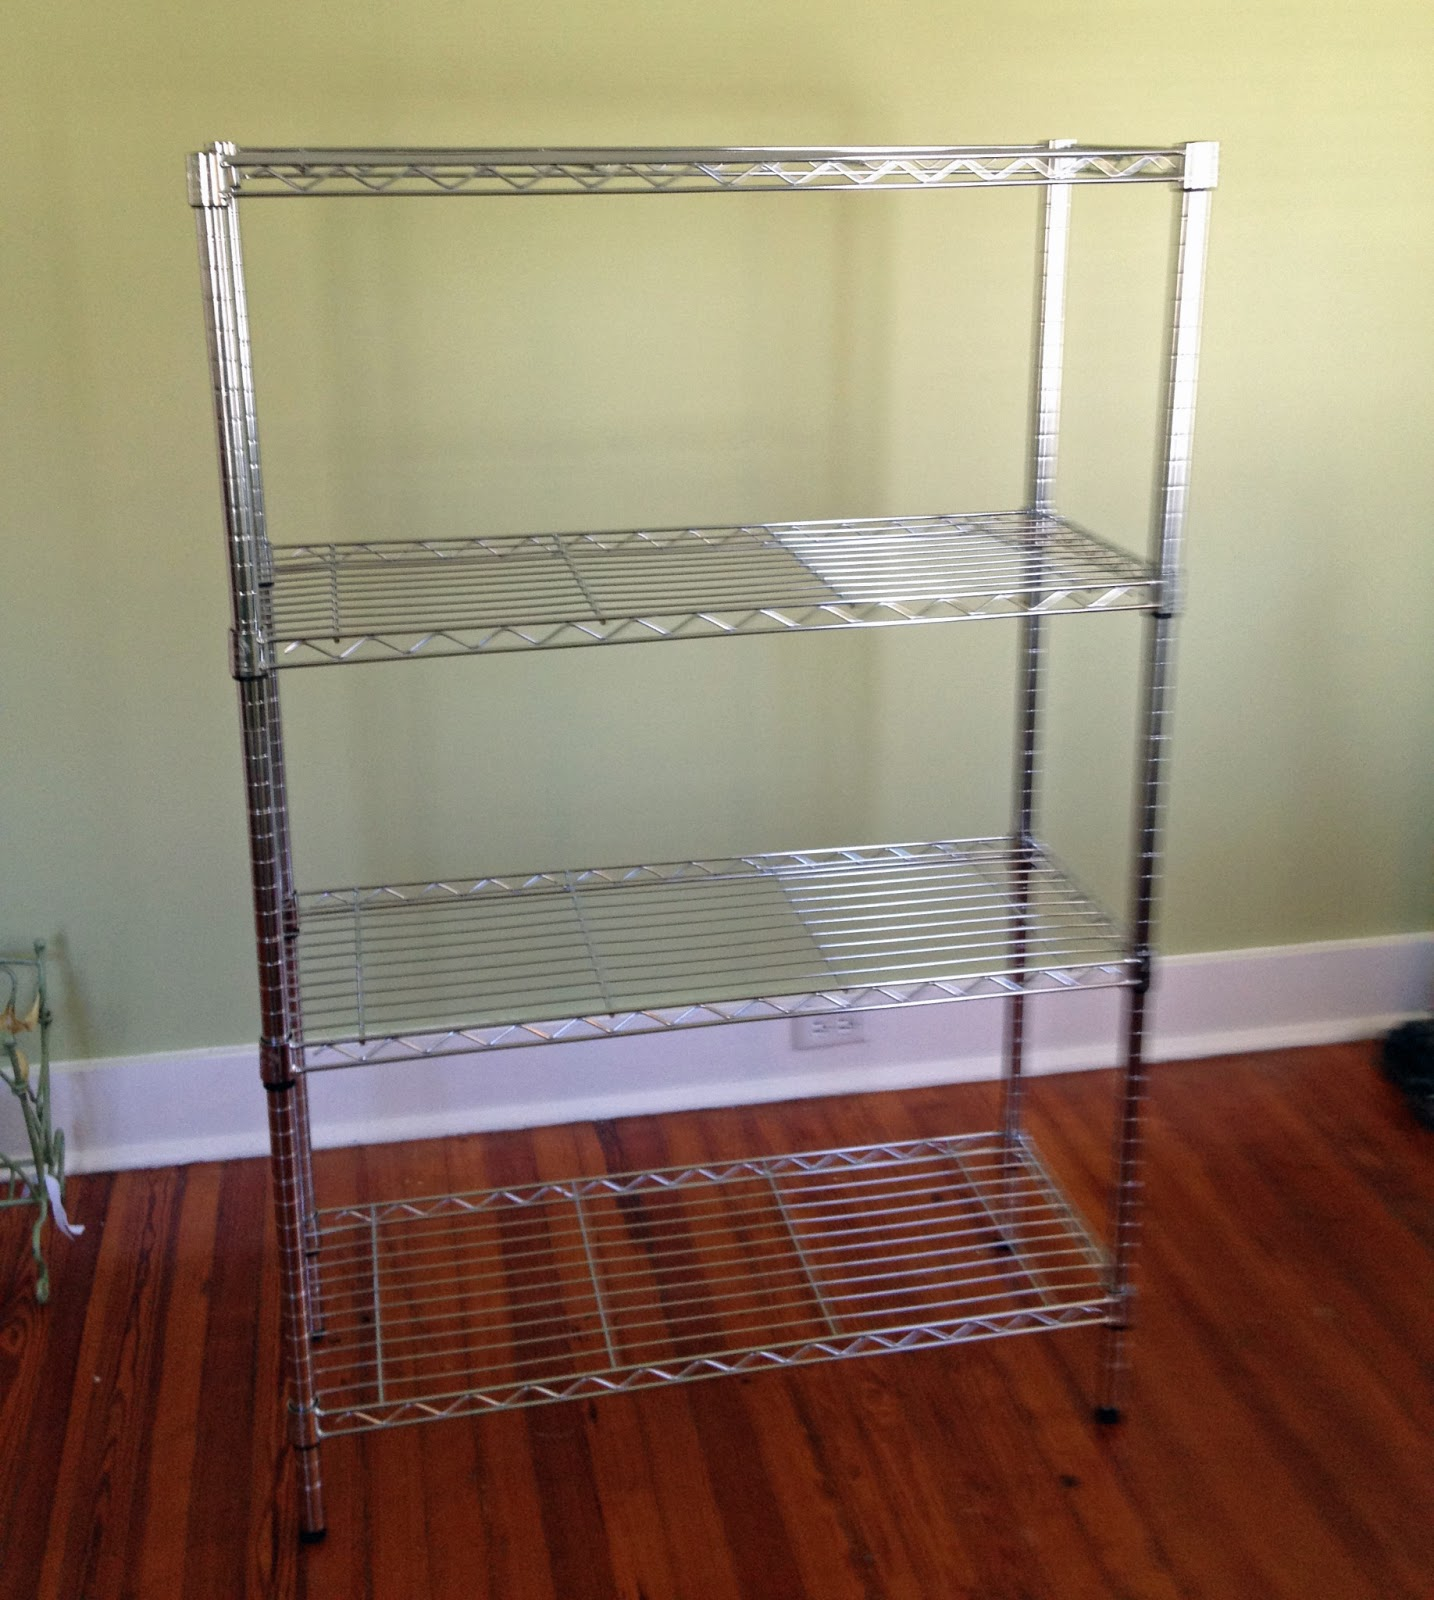 Pleasing Citydogcountrydoghome Easy Fabric Cover For Wire Shelves In Download Free Architecture Designs Embacsunscenecom